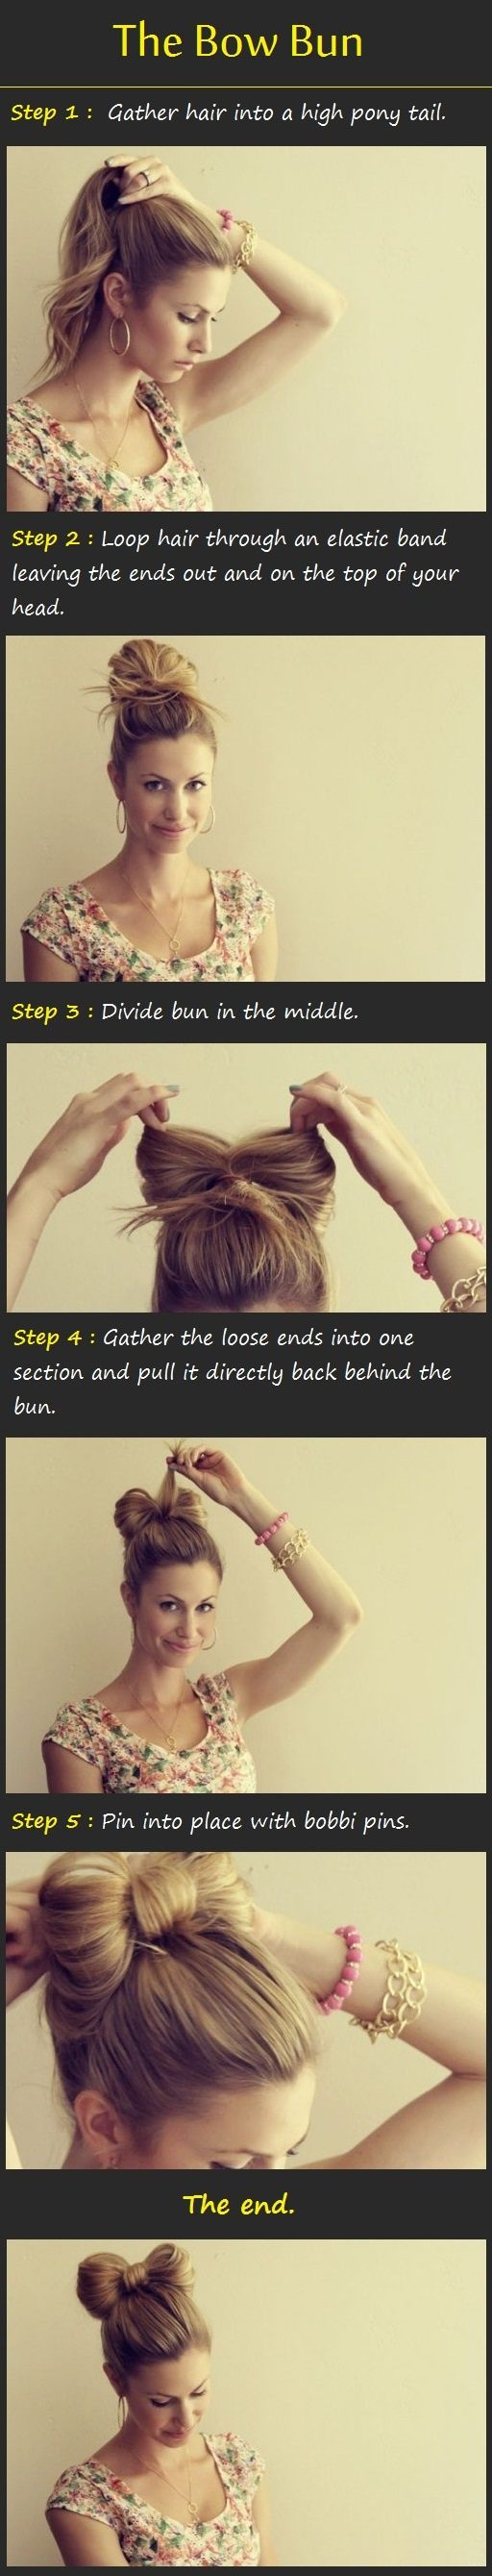 The bow bun who knew it was so simple to do i canut wait to